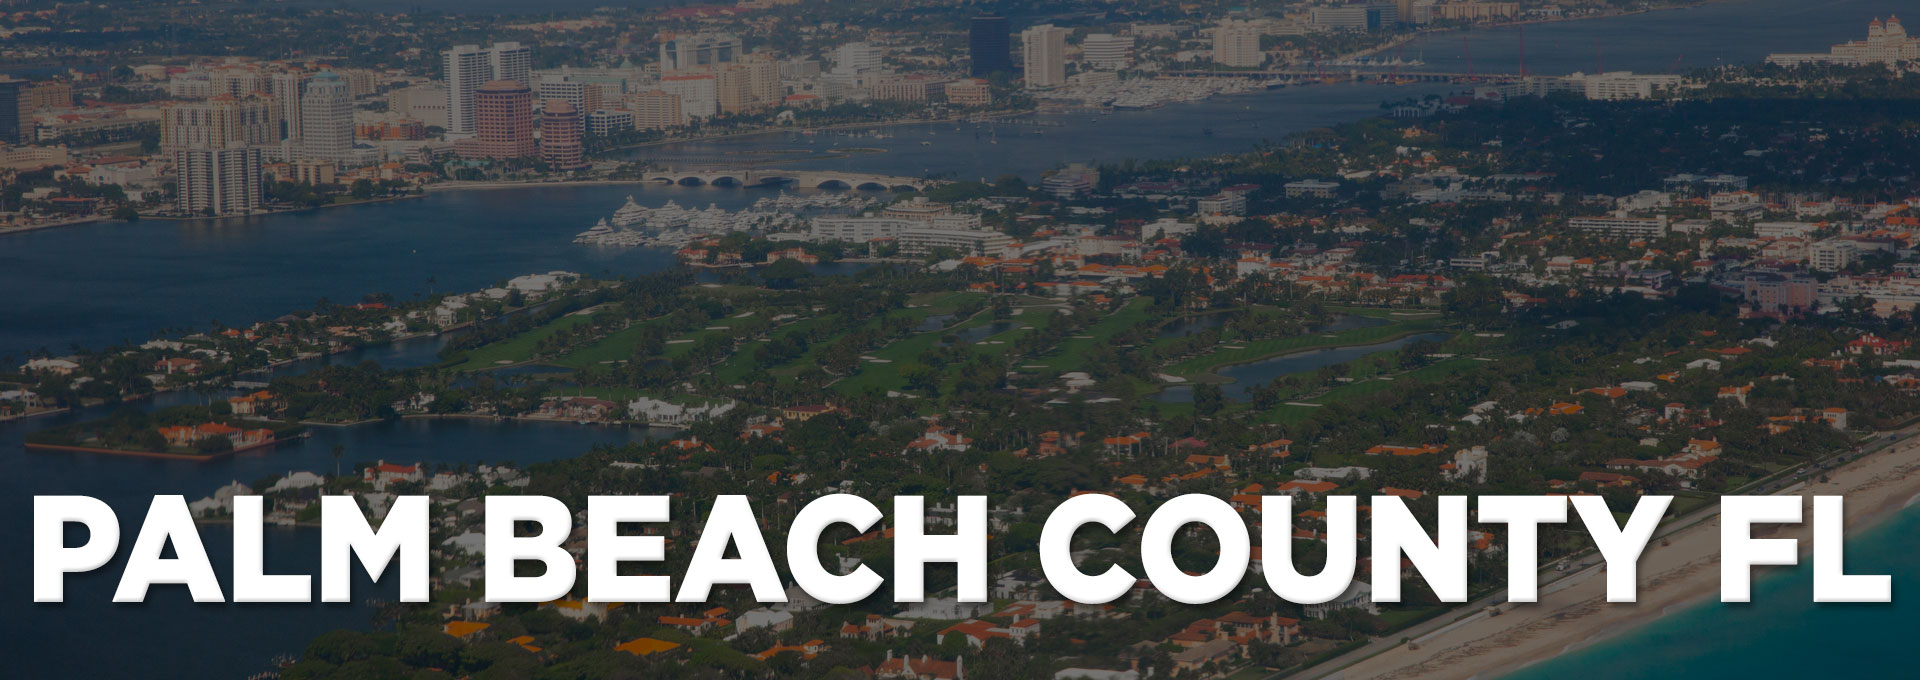 aerial view of palm beach county from the ocean